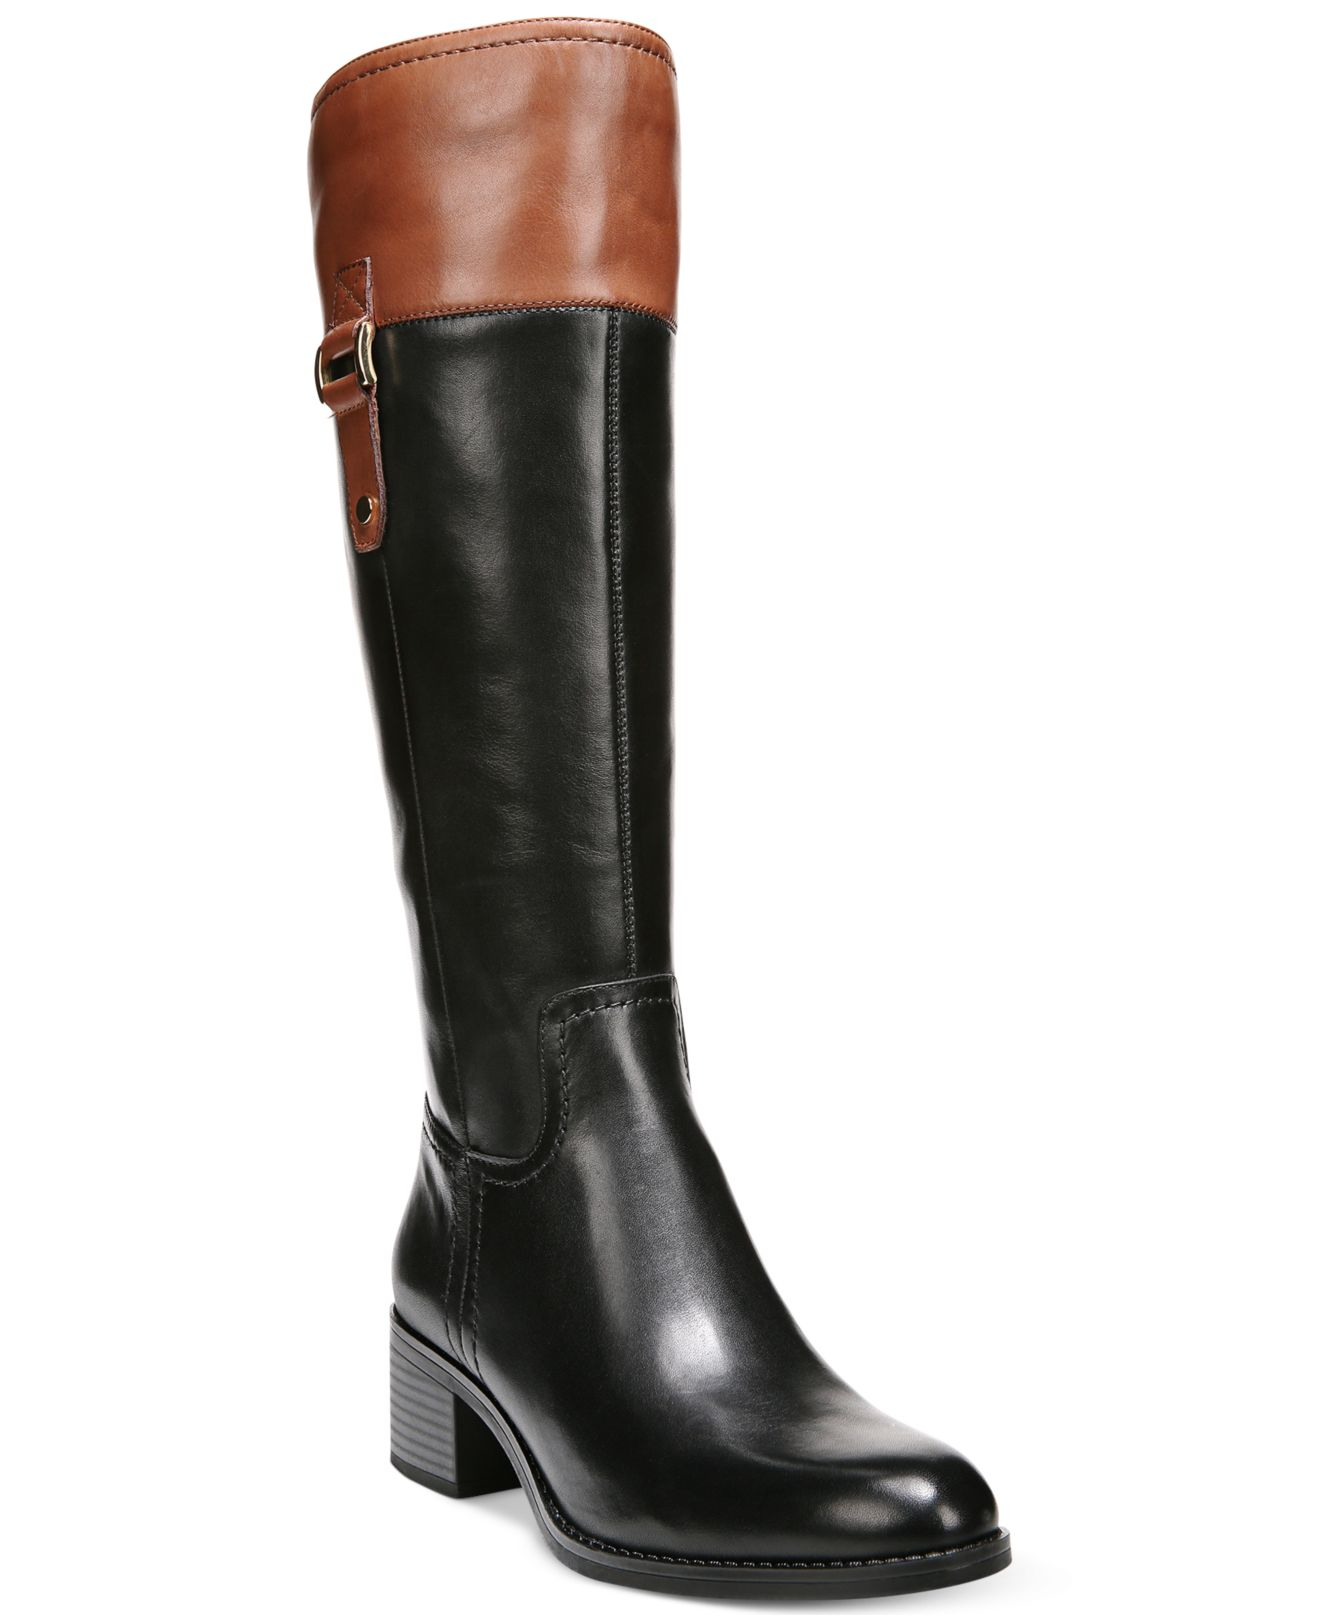 b21a20a9918 Franco Sarto Wide Calf Boots - The Best Boots In The World